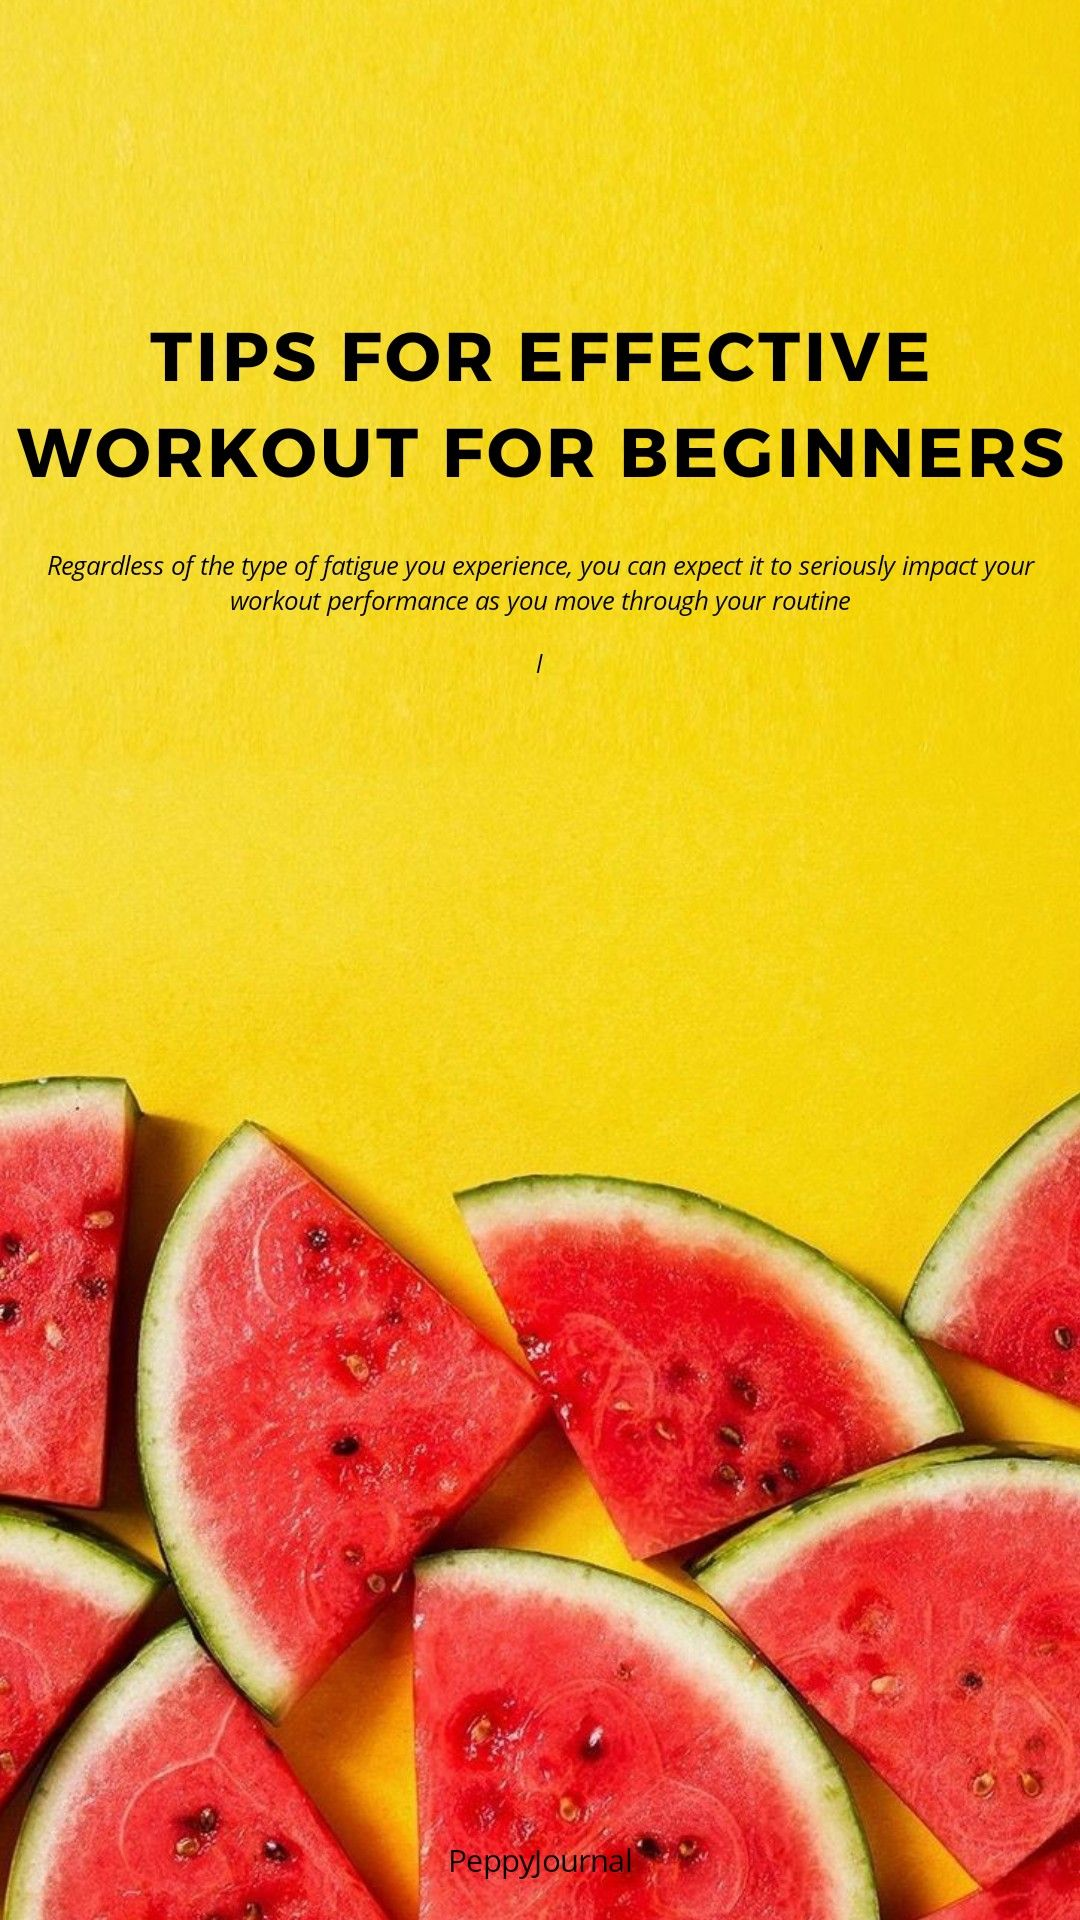 5 Things To Do And Not To Do To Make Your Workout Easy